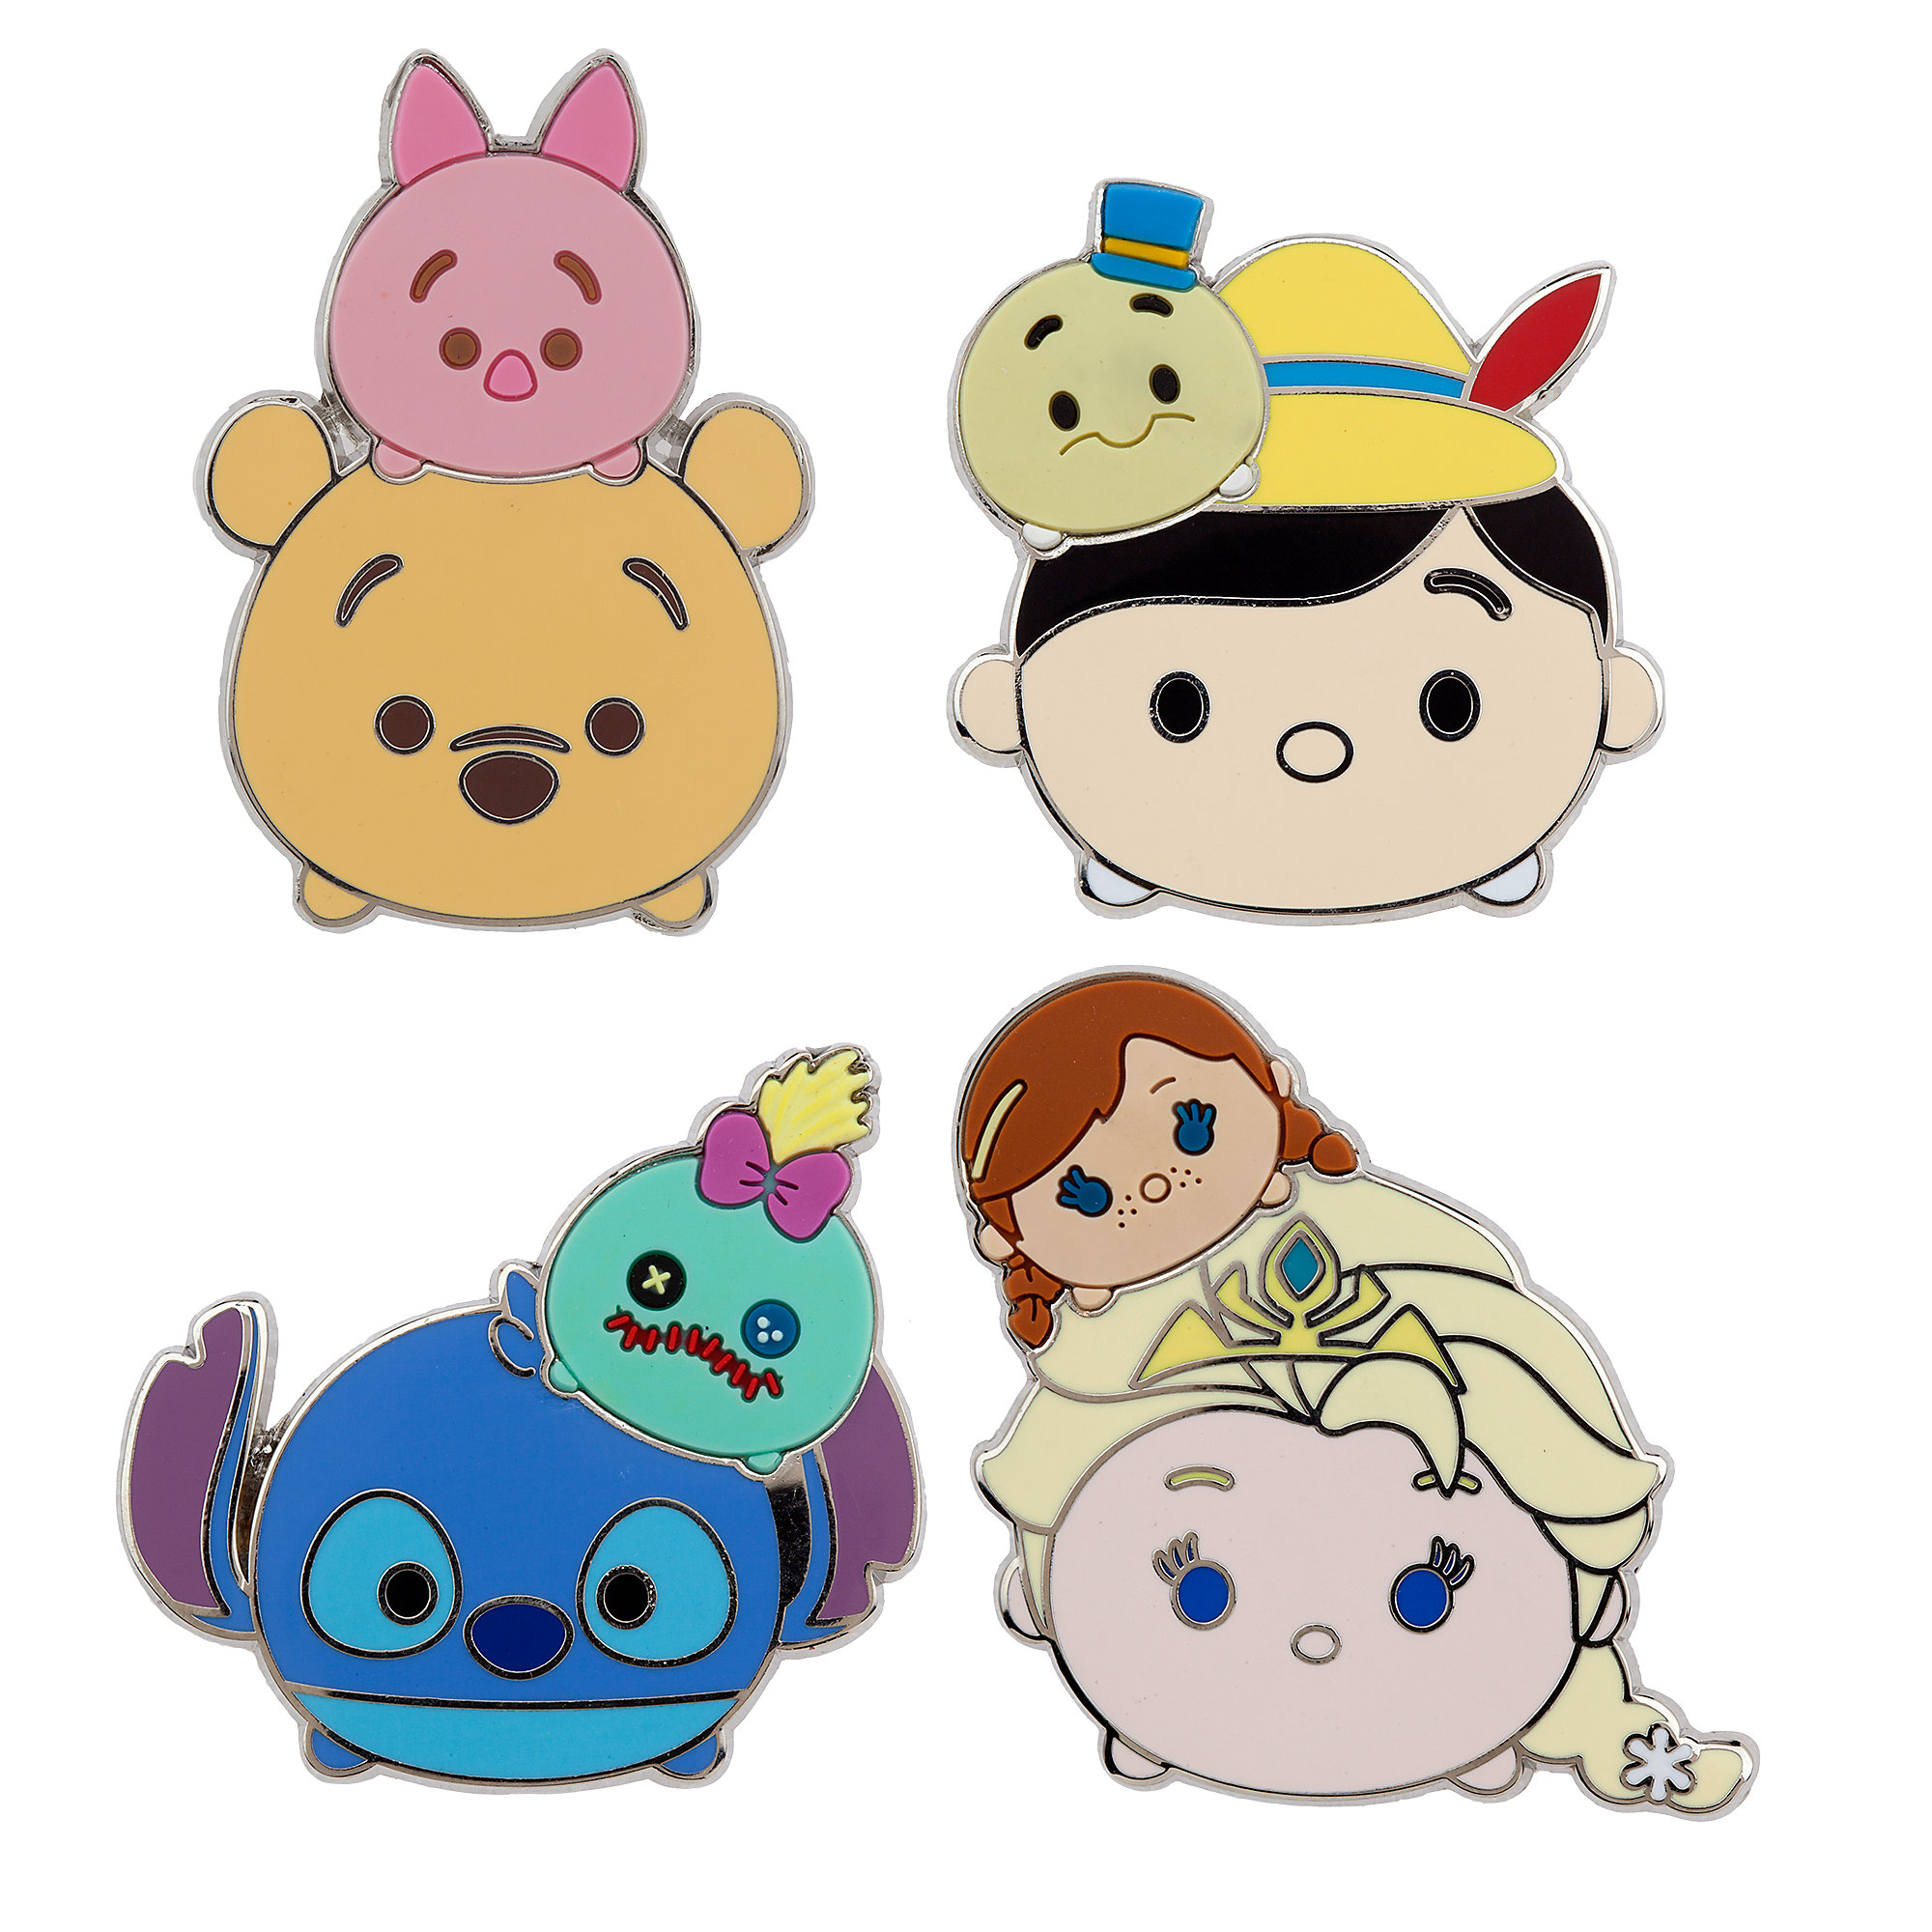 This is an image of Insane Tsum Tsum Disney